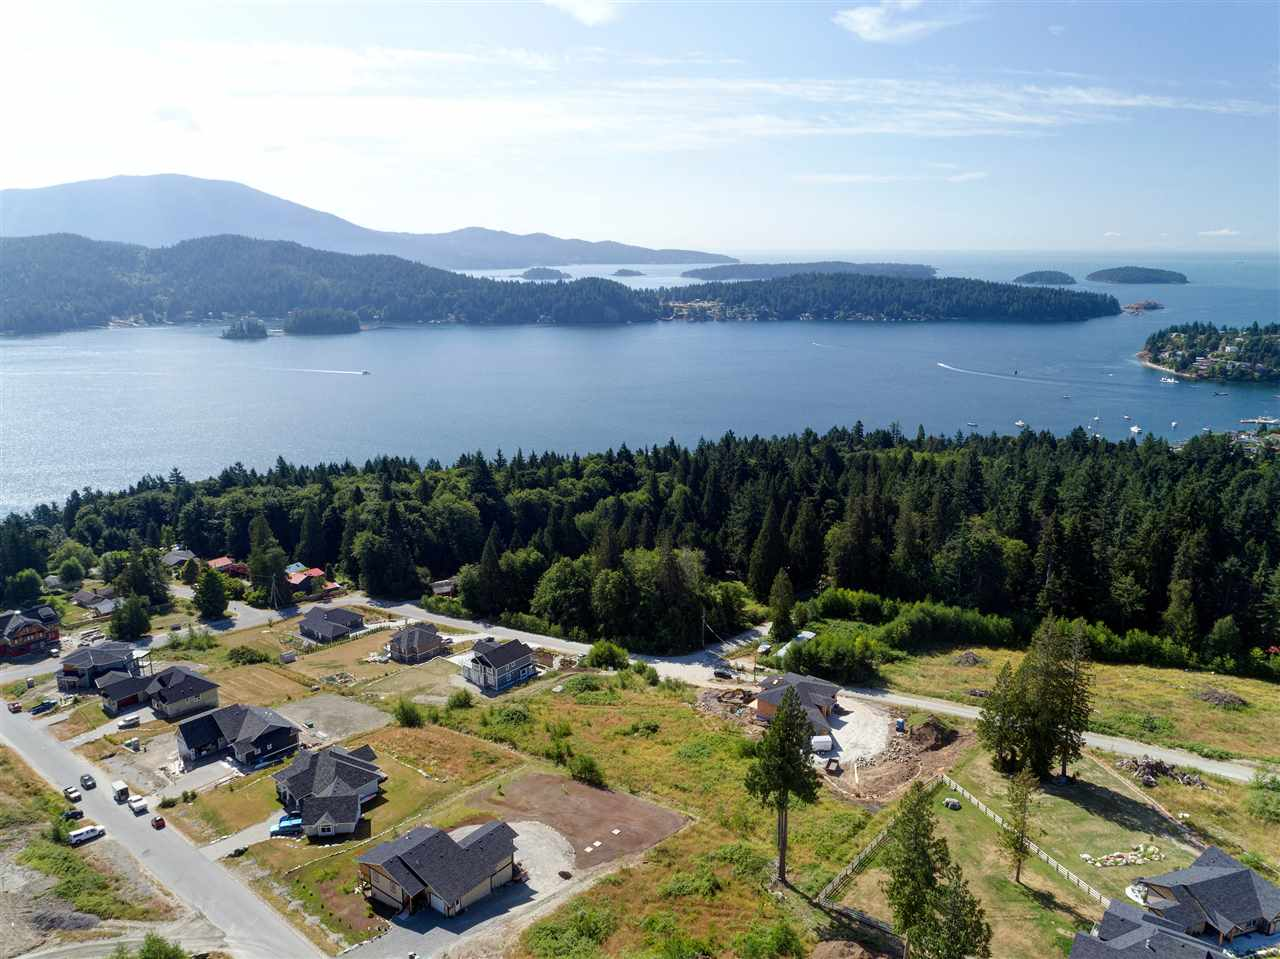 Rare offering of the only available 1/2 acre lot in prestigious Vista Ridge in Granthams Landing. Property is located in area of million dollar homes with million dollar views of Howe Sound and the Coastal mountains. Development offers both privacy and protected views on the easy to build lots. Great location only minutes to ferry and all the amenities of Gibsons. Bring your plans to create your dream home here!  NO GST!